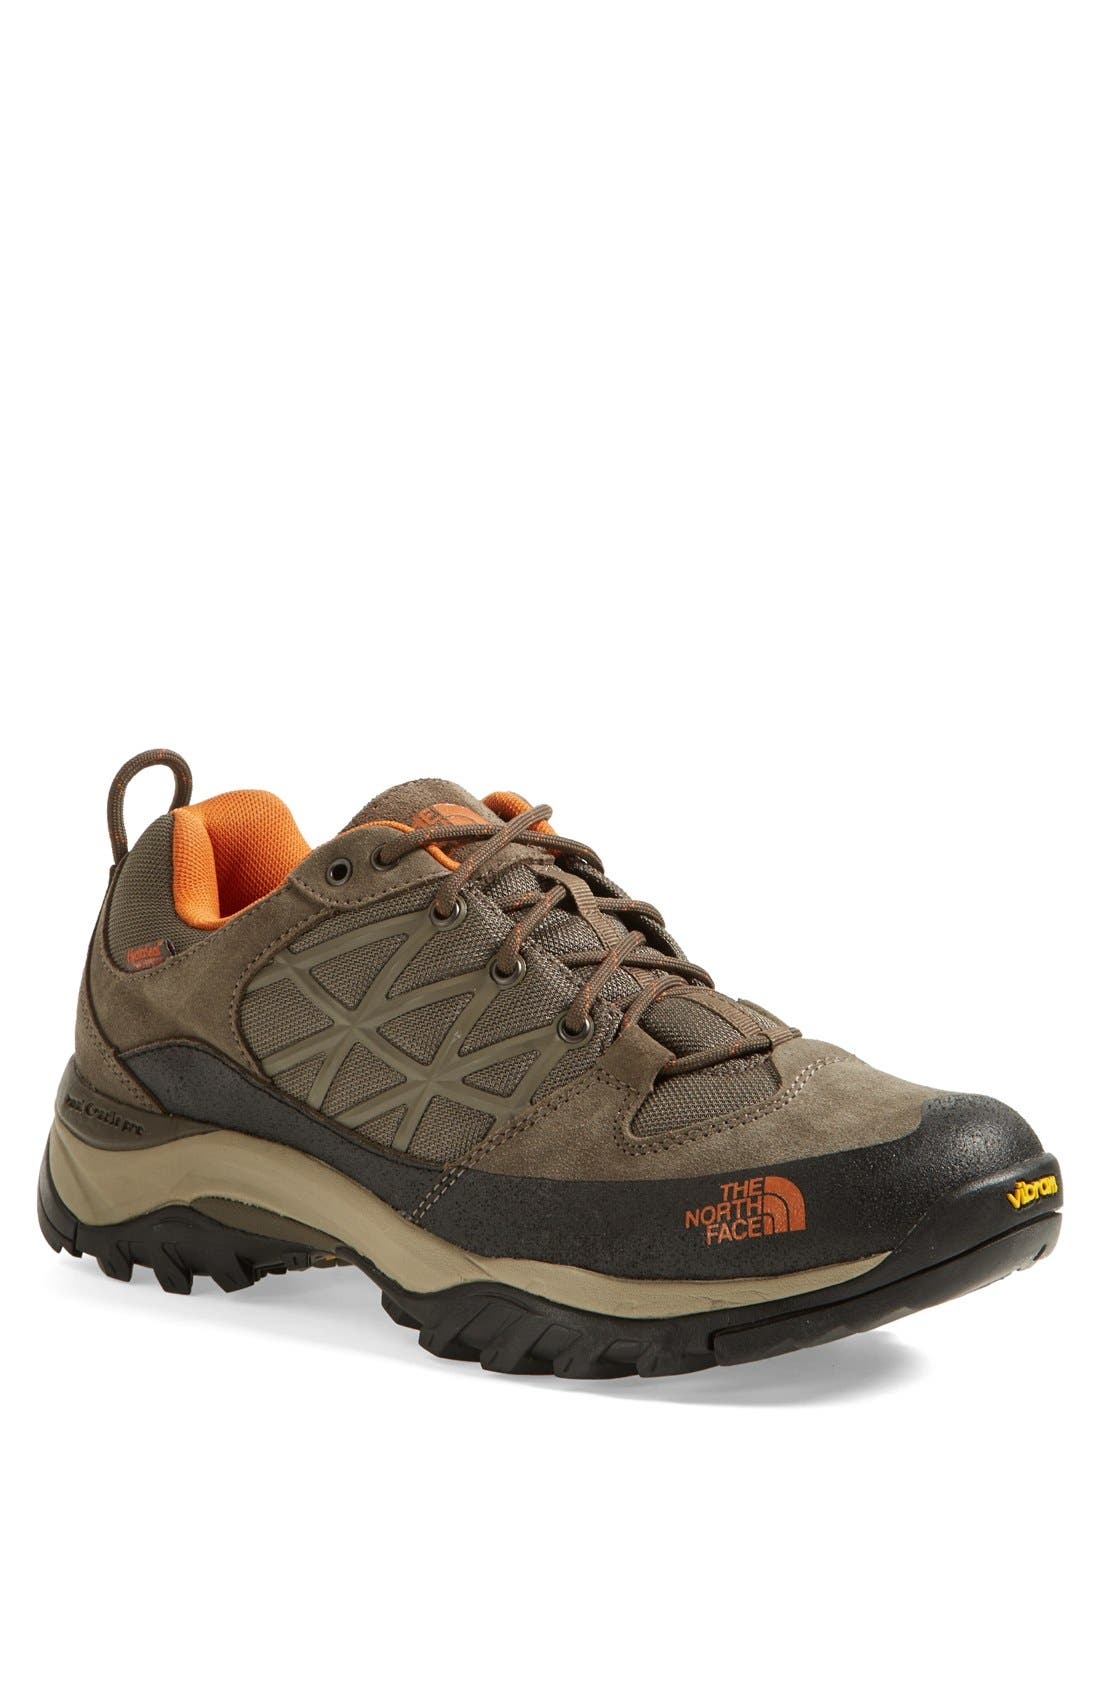 Alternate Image 1 Selected - The North Face 'Storm WP' Hiking Shoe (Men)